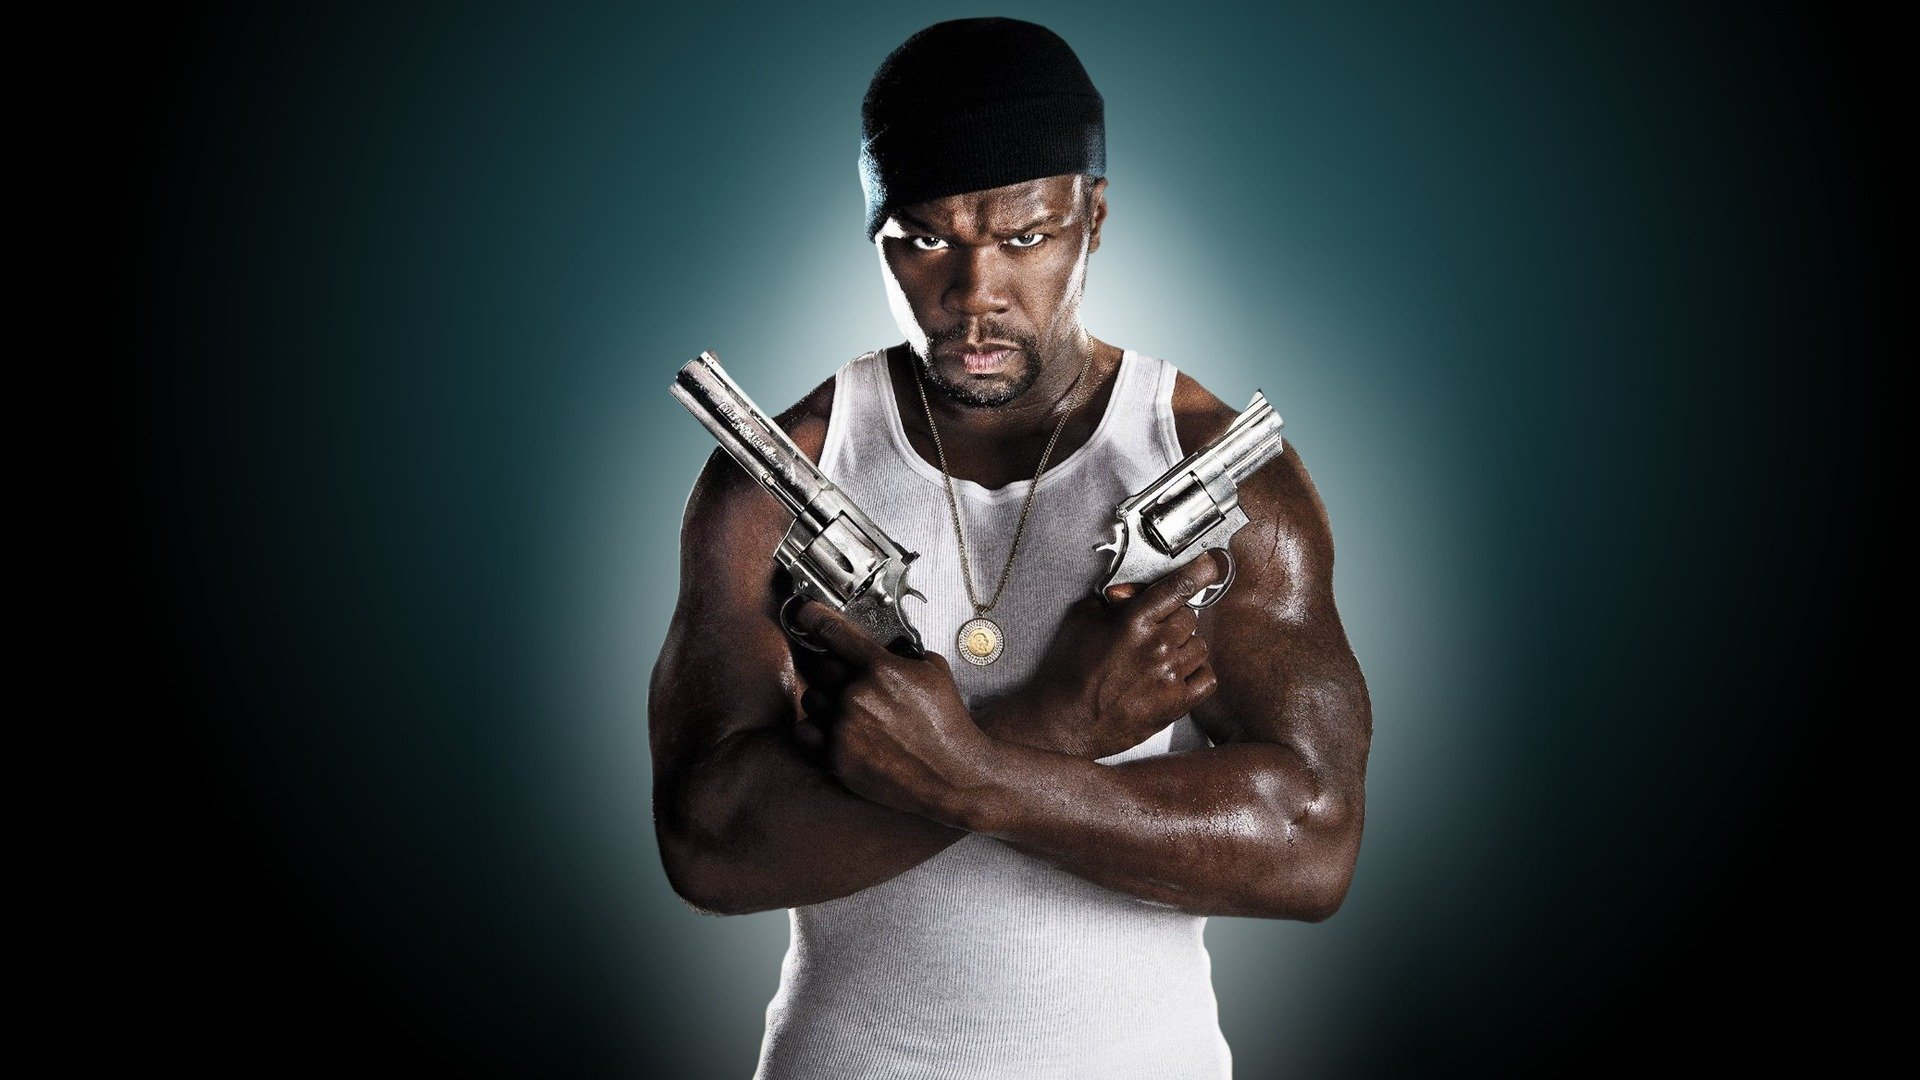 50 Cent Guns Rap Wallpapers 1920x1080